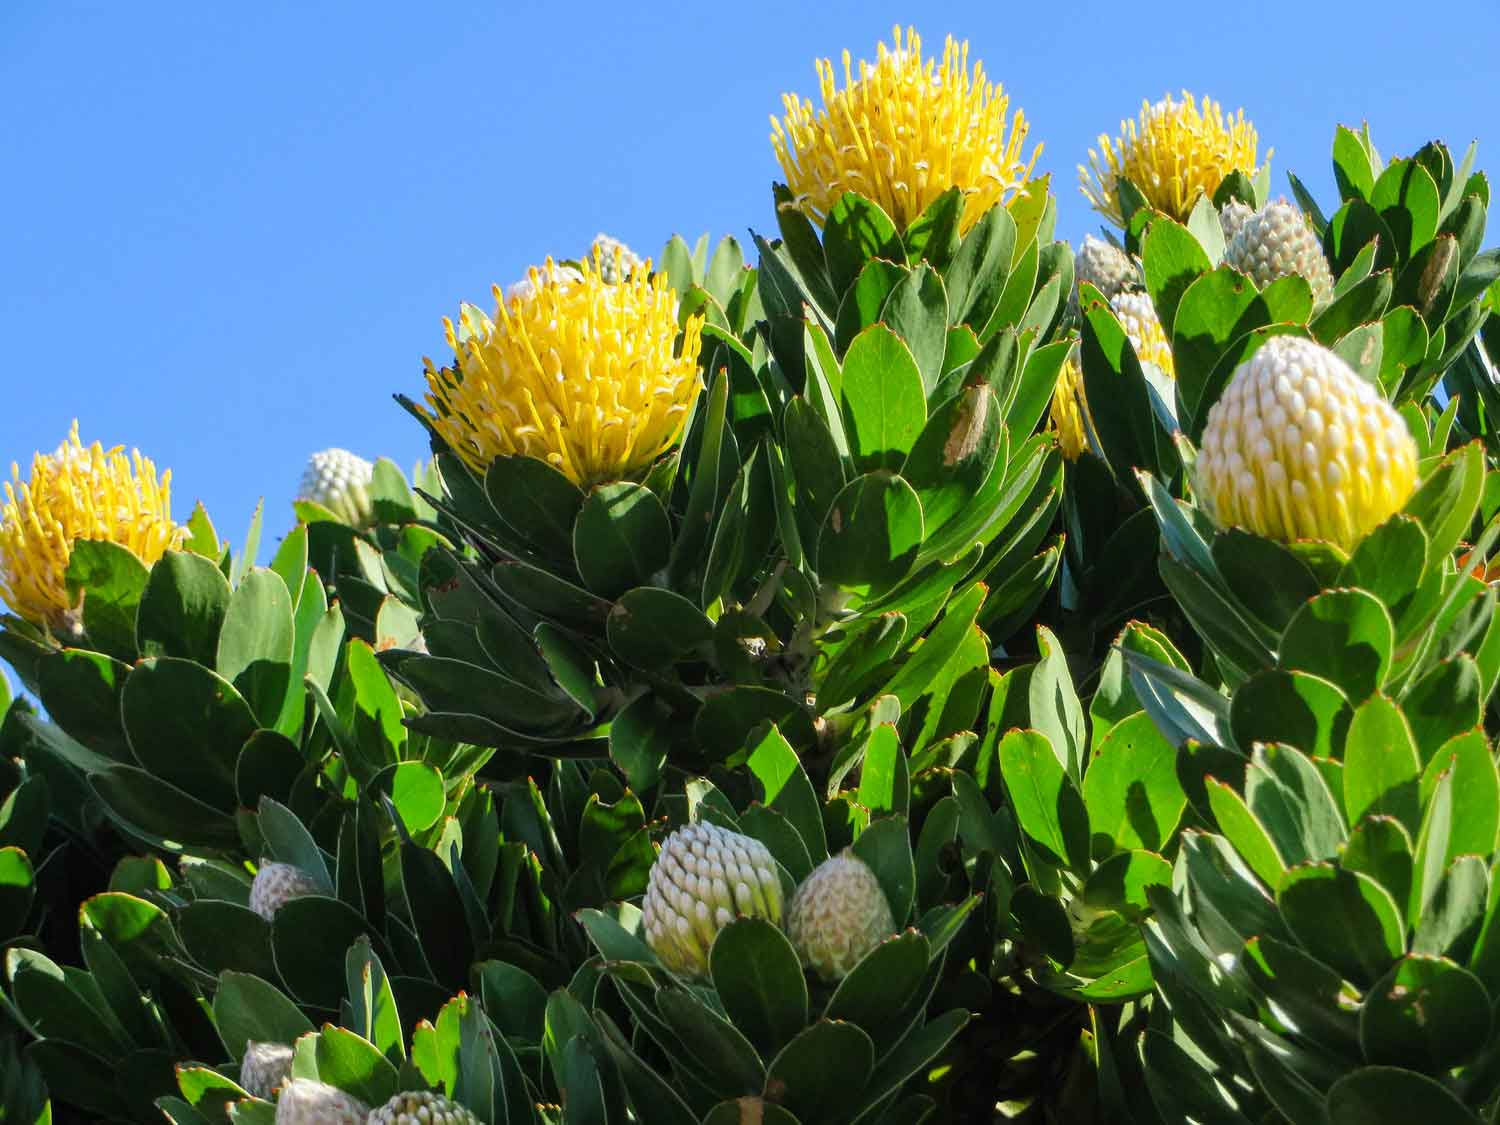 Protea South Africa Flower